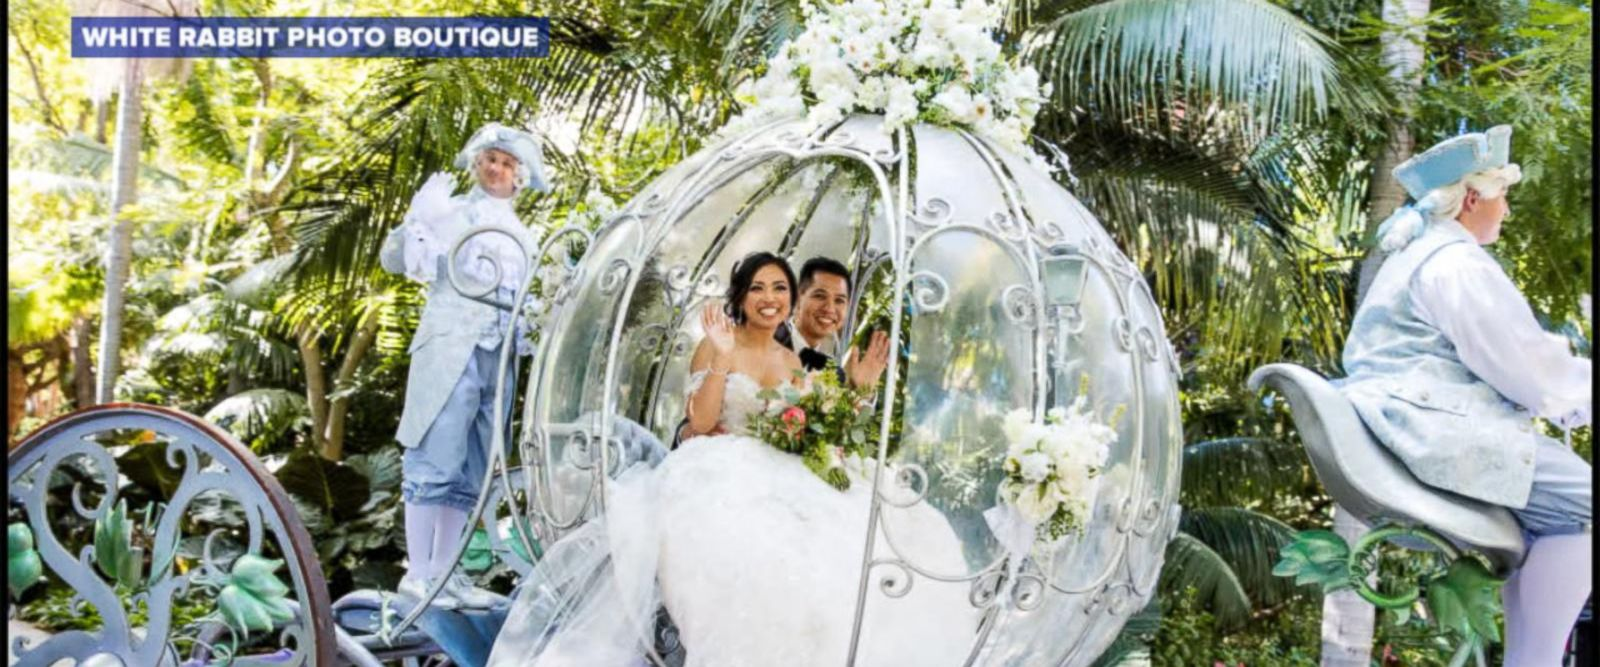 VIDEO: This couple's epic Fairy Tale Wedding at Disneyland will blow you away